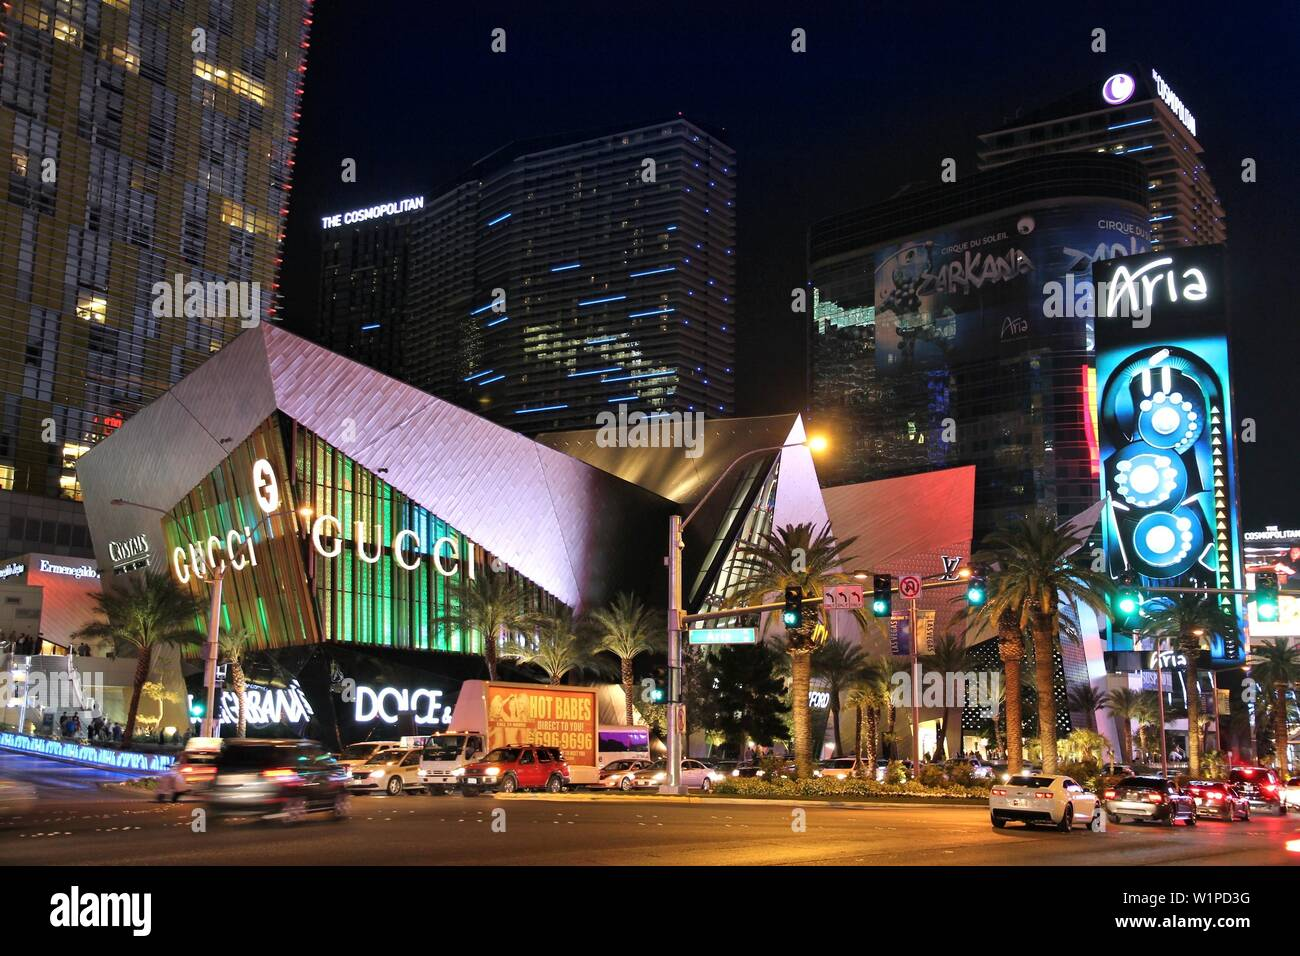 LAS VEGAS, USA - APRIL 13, 2014: Traffic at the Strip in Las Vegas. 15 of 25 largest hotels in the world are located at the strip with more than 60 th - Stock Image